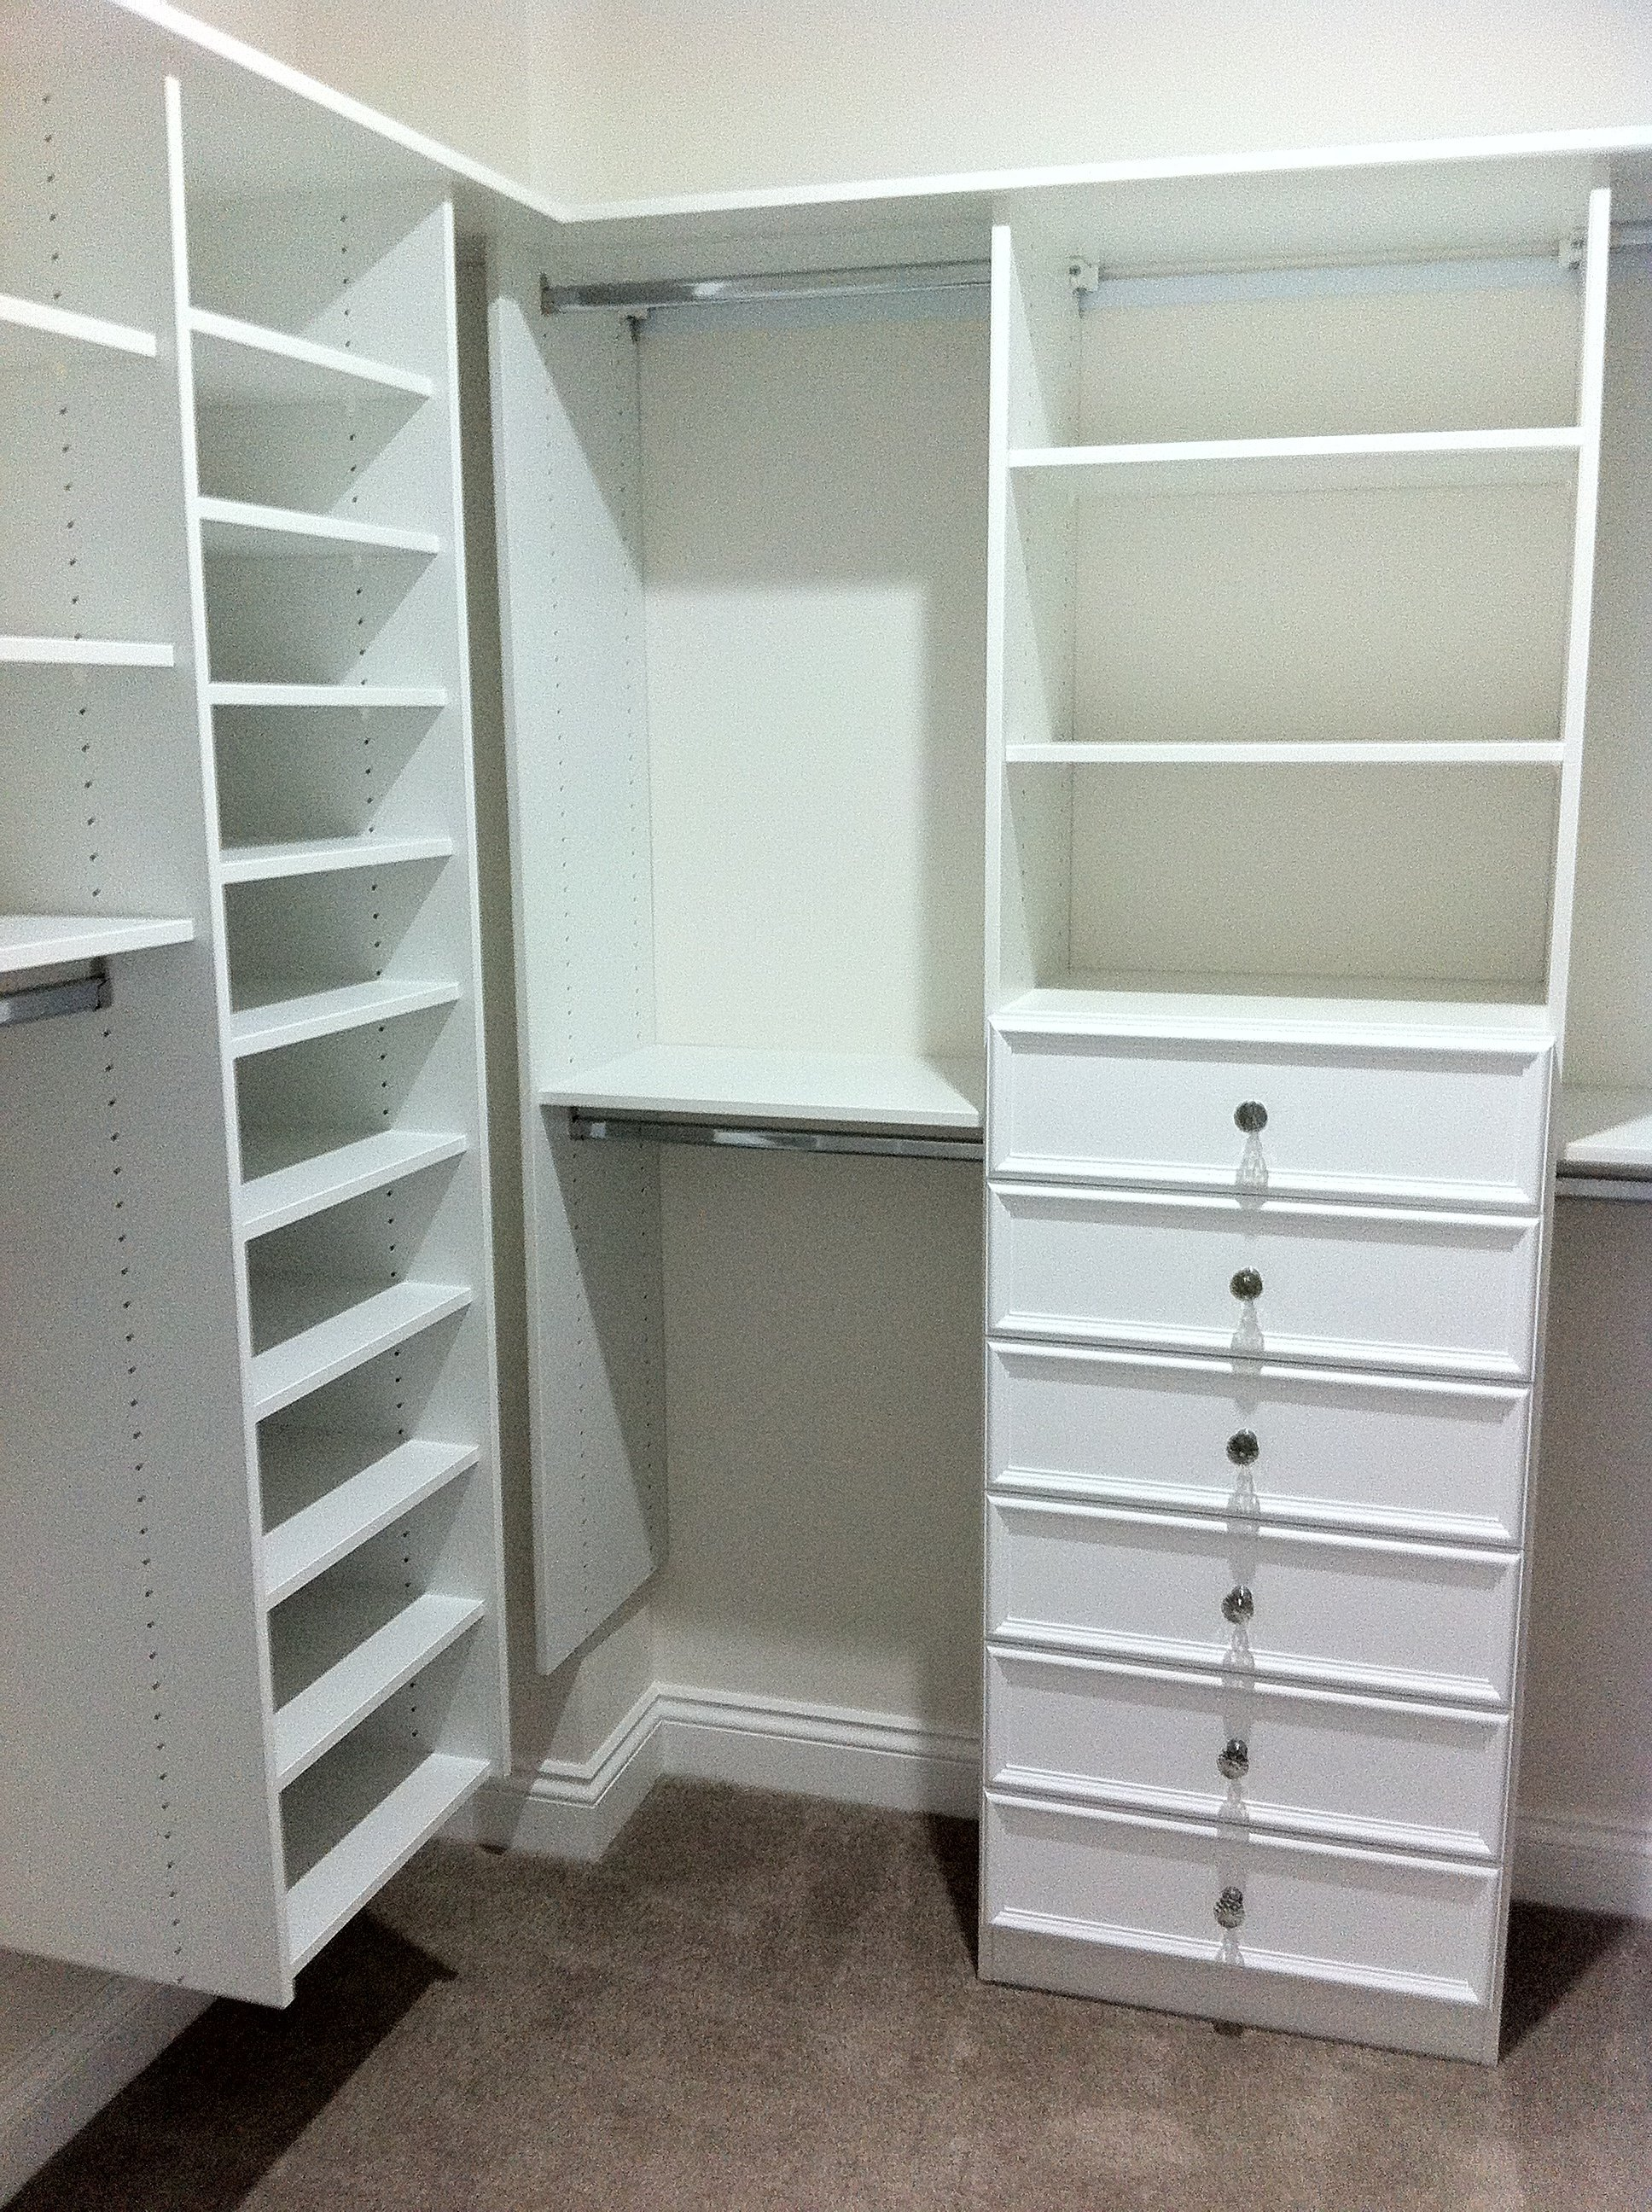 Custom wardrobe manufactured by experts